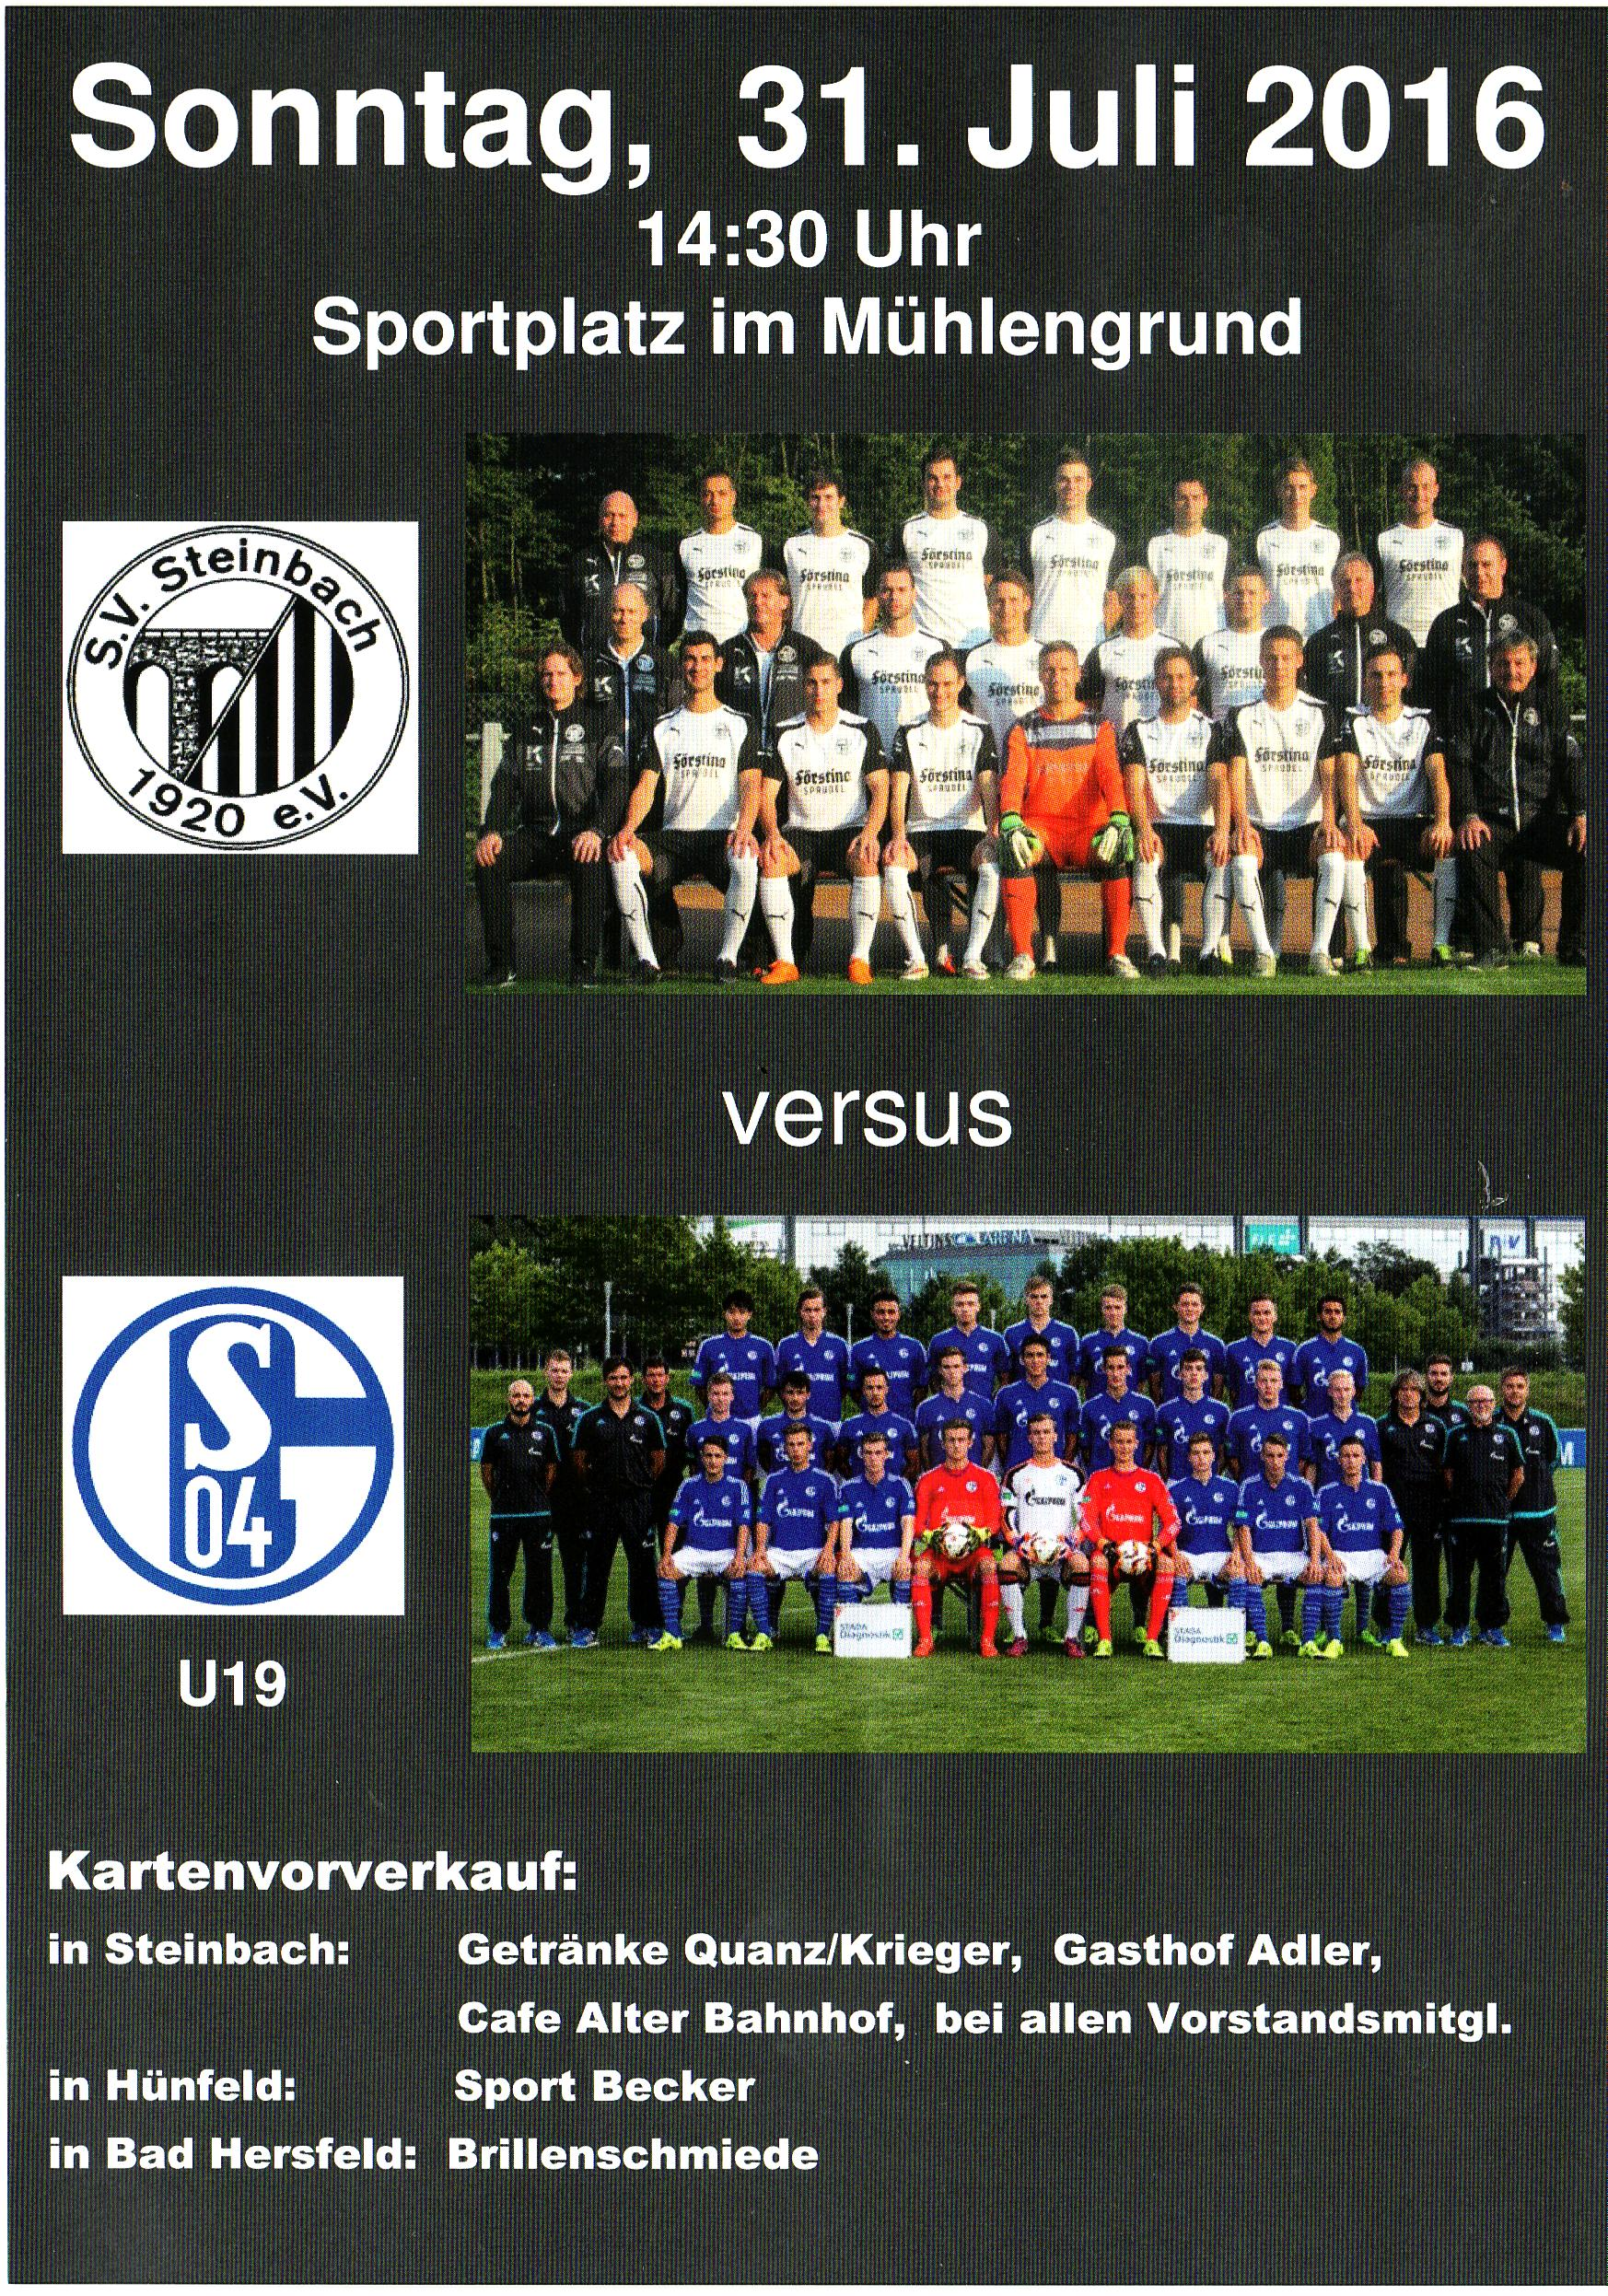 SVS - S04 31.7.16 Flyer A5 u. A6 Vorderseite